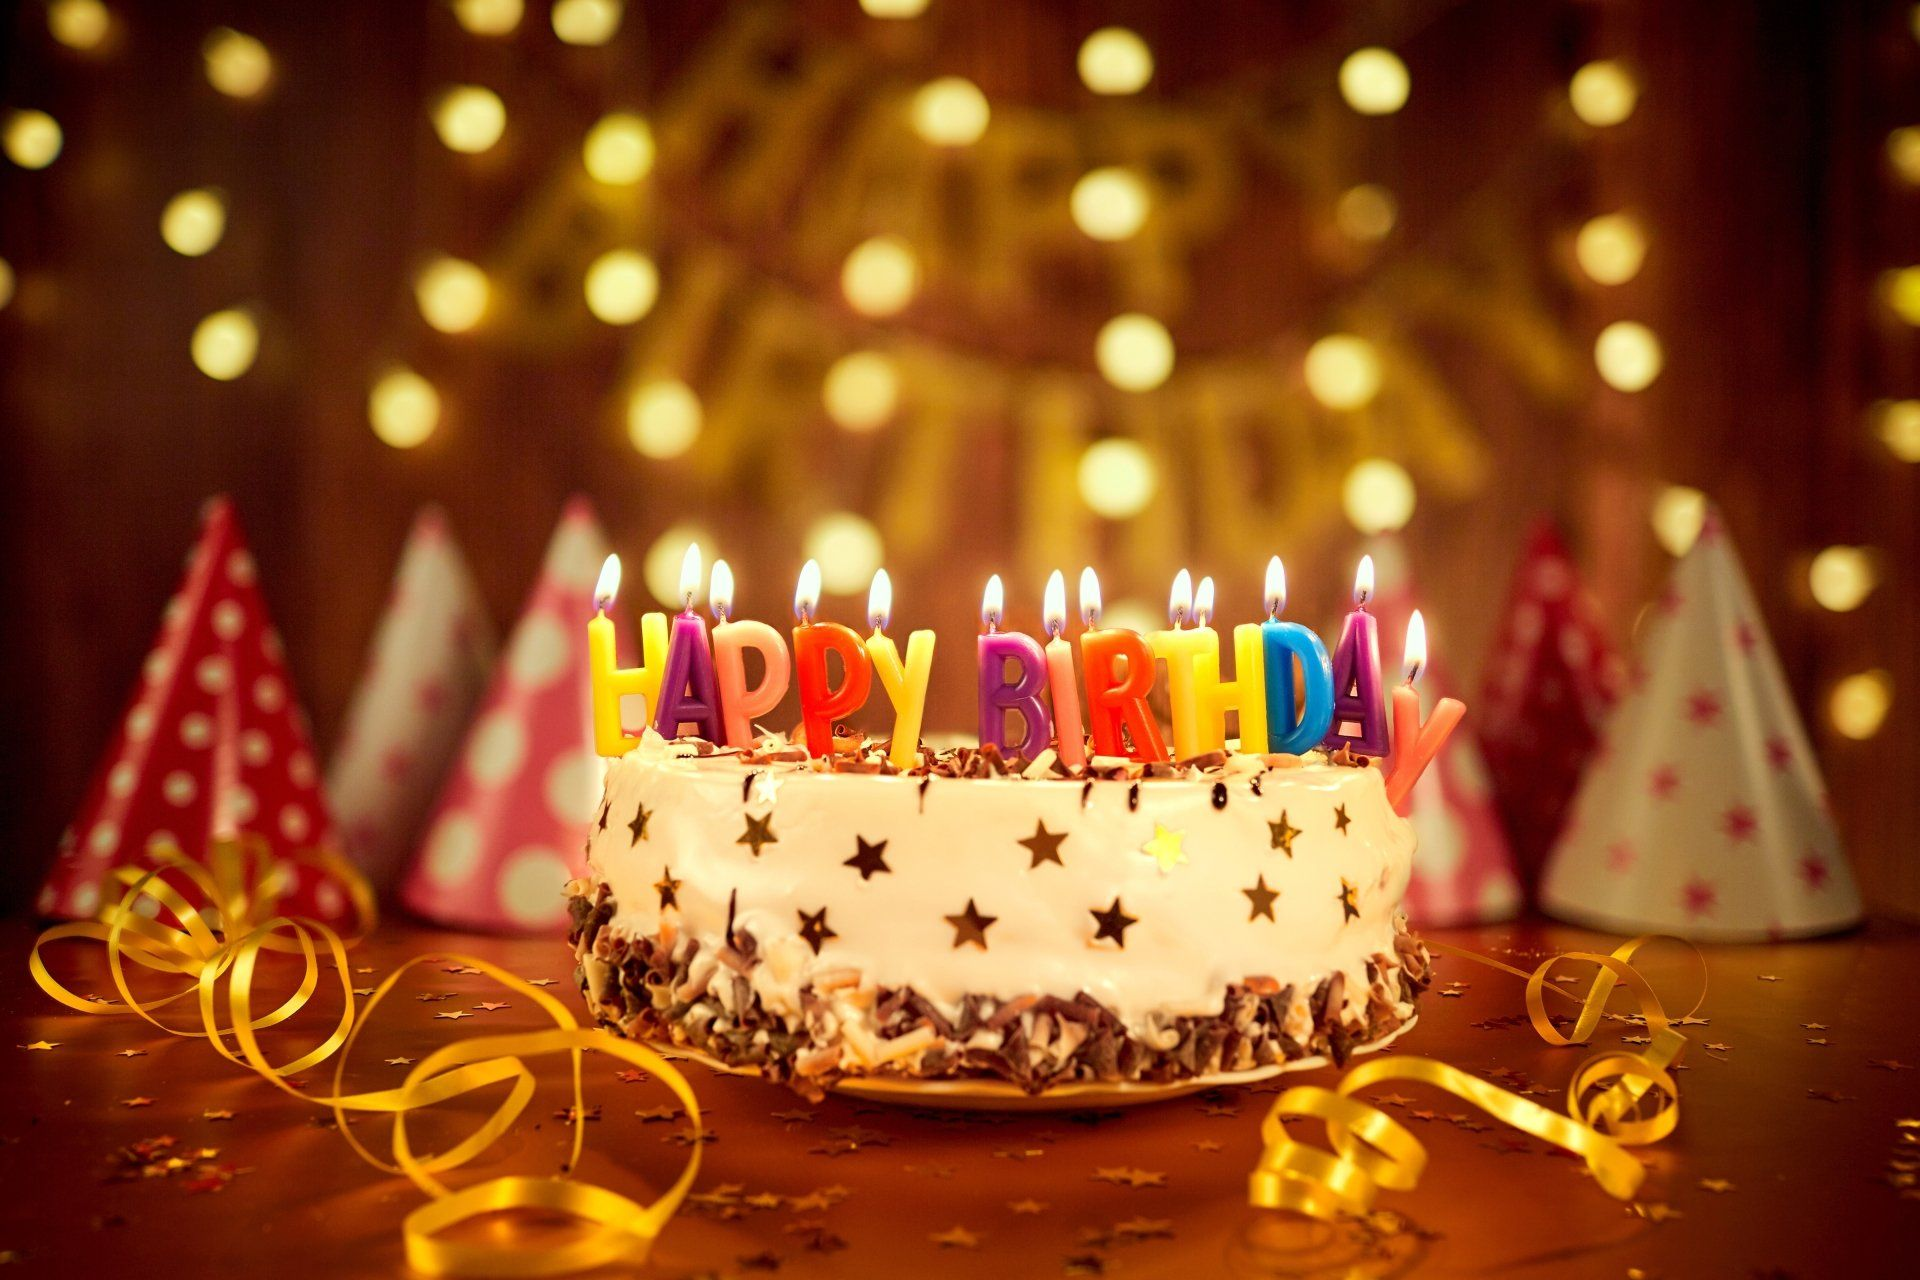 Holiday Birthday Happy Birthday Cake Colors Candle Pastry